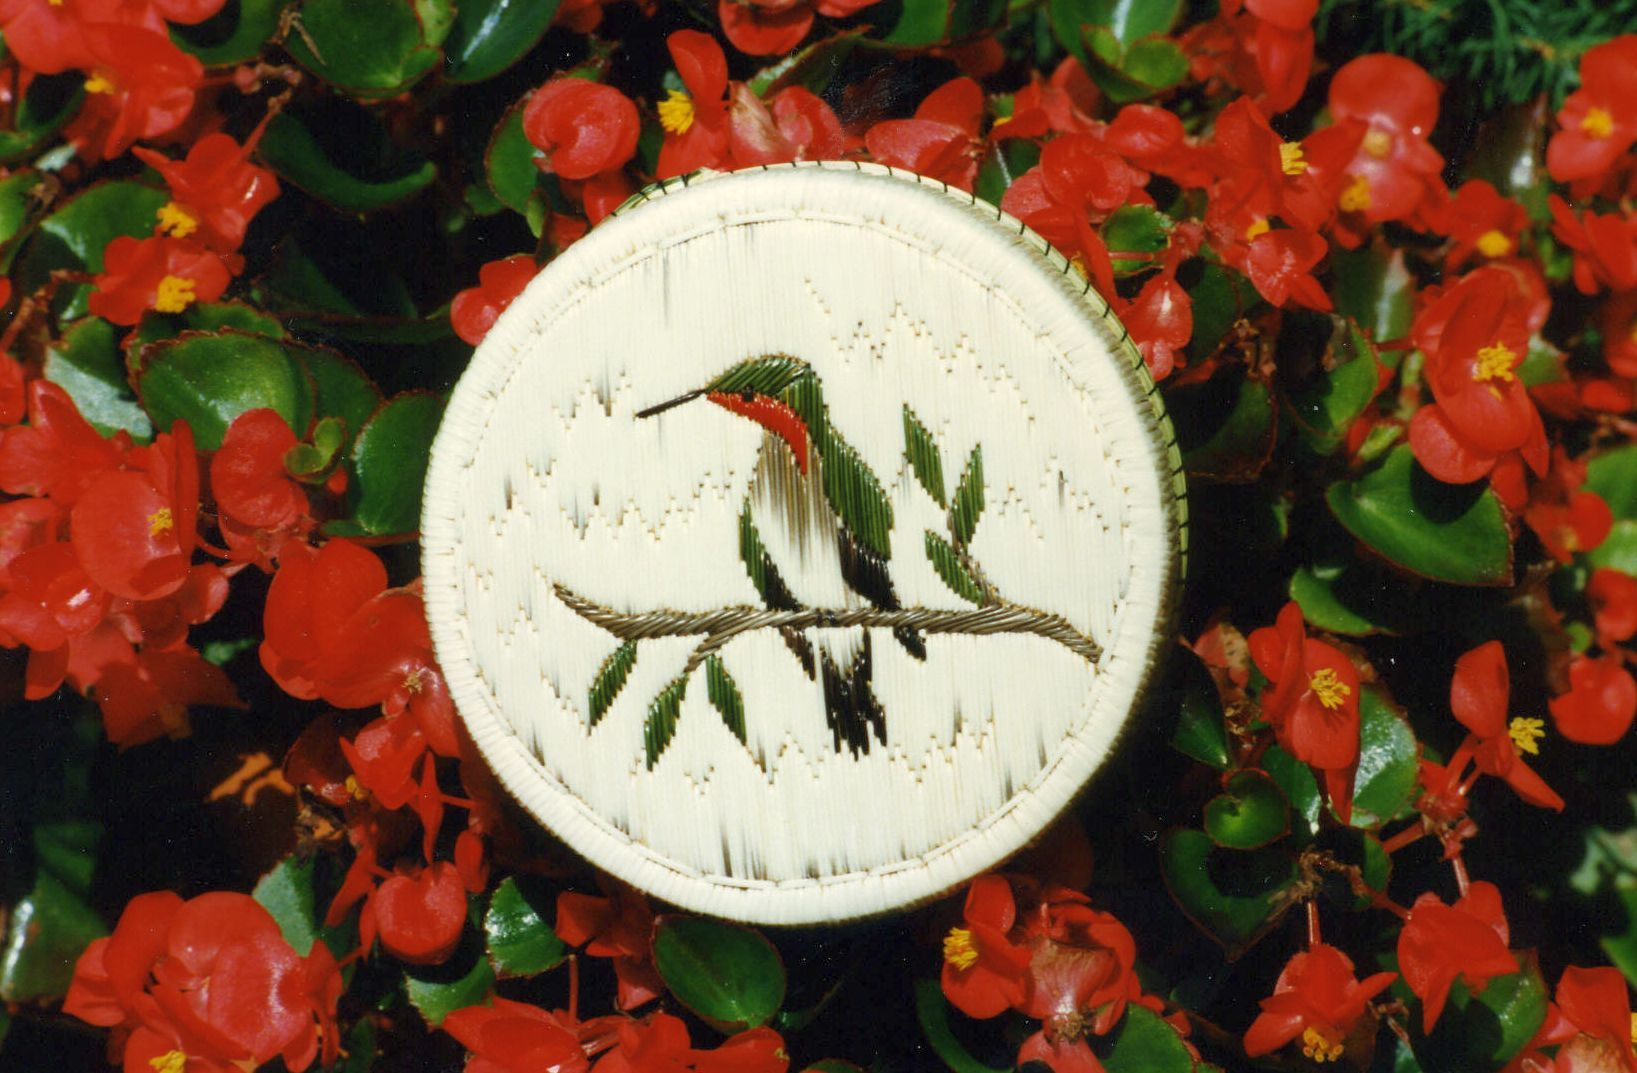 The art of decorating boxes, baskets and garments with porcupine quills is unique to North America. Indians living in the Great Lakes area were doing quill work long before the first European arrived. This hummingbird design quill box was made by Ojibway Irene Desmoulin of Wikwemikong, Ontario, Canada.  Decorative quill work is called Gaweug by the Ojibway tribe.